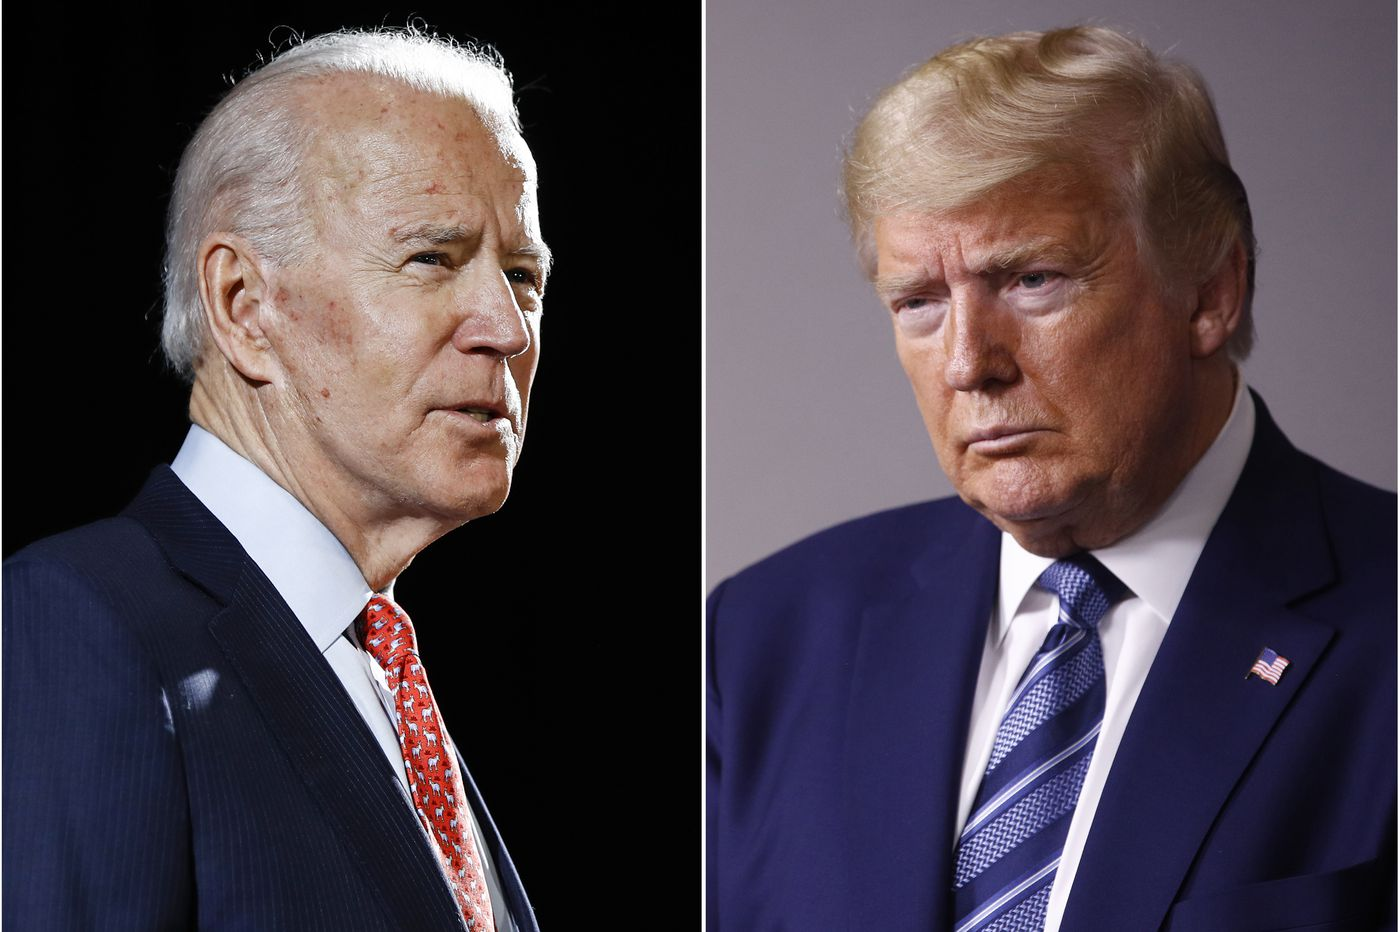 Pro-Biden groups have spent twice as much on TV in Pennsylvania as pro-Trump groups